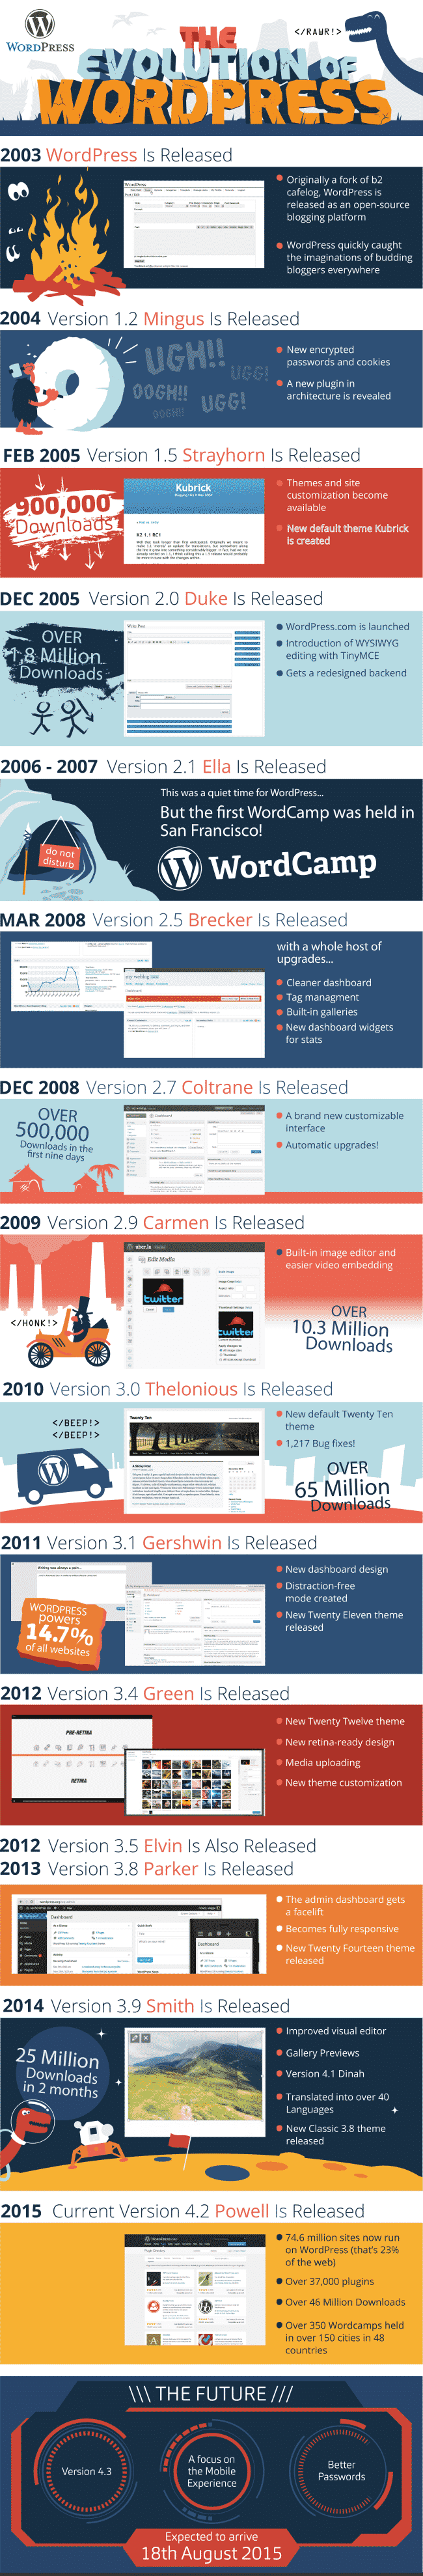 wordpress-evolution